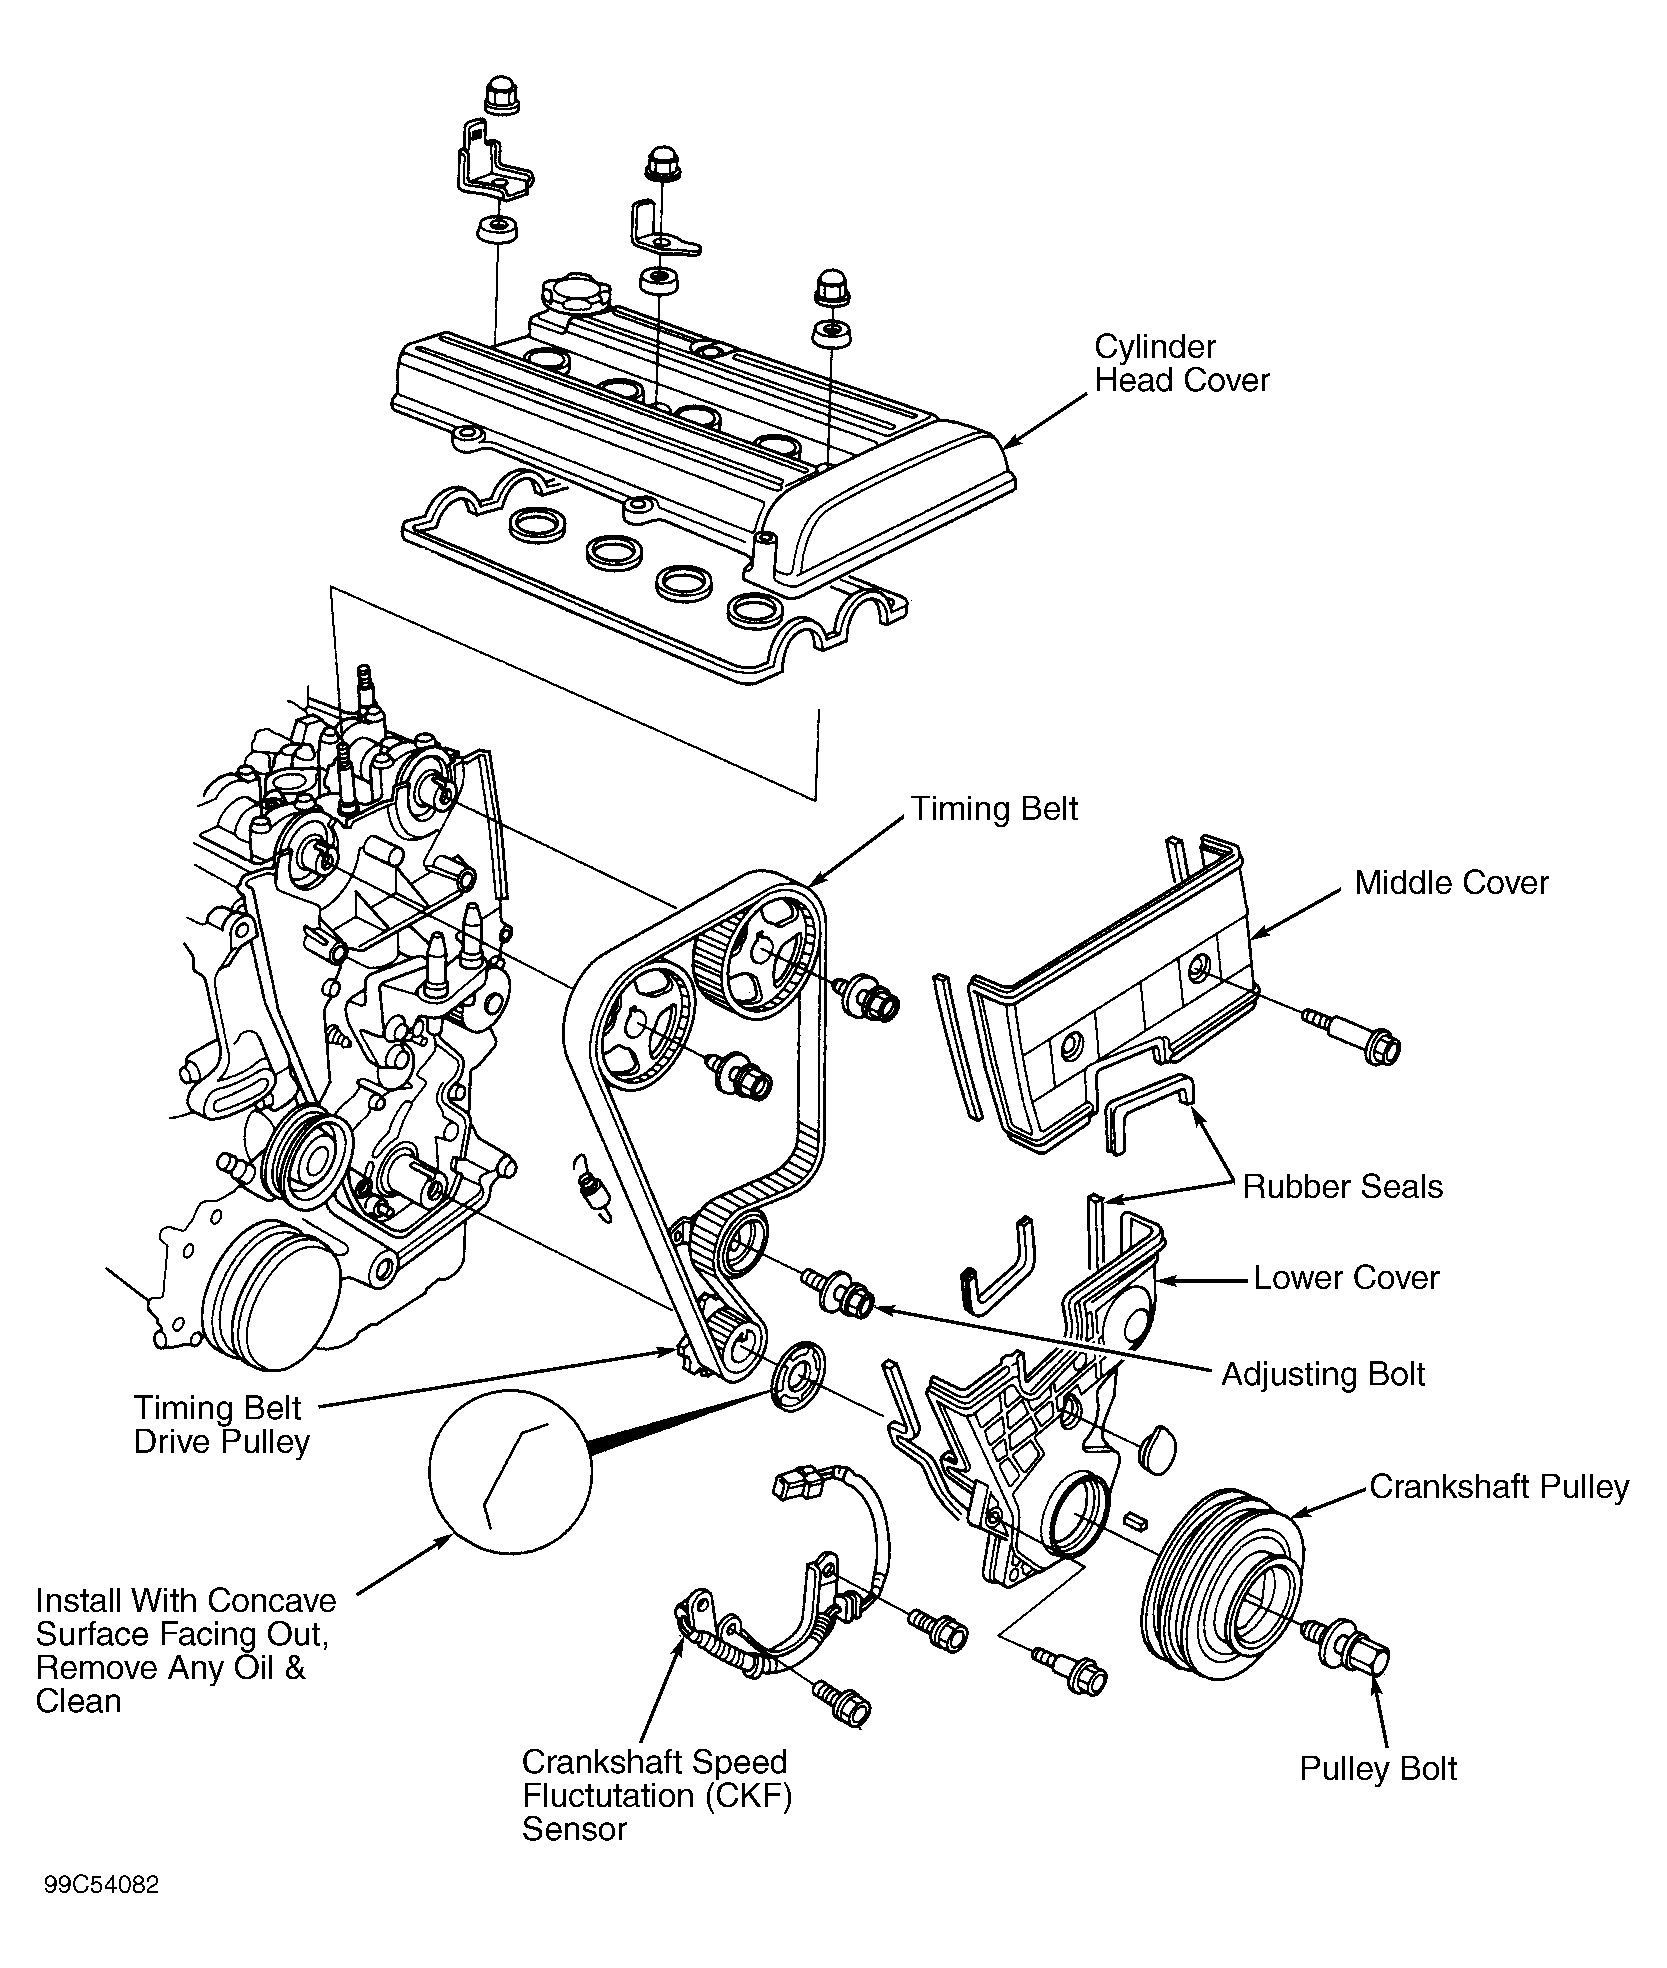 97 Honda Cr V Engine Bay Diagram Ht Wiring Diagram Tomosa35 Jeep Wrangler Waystar Fr